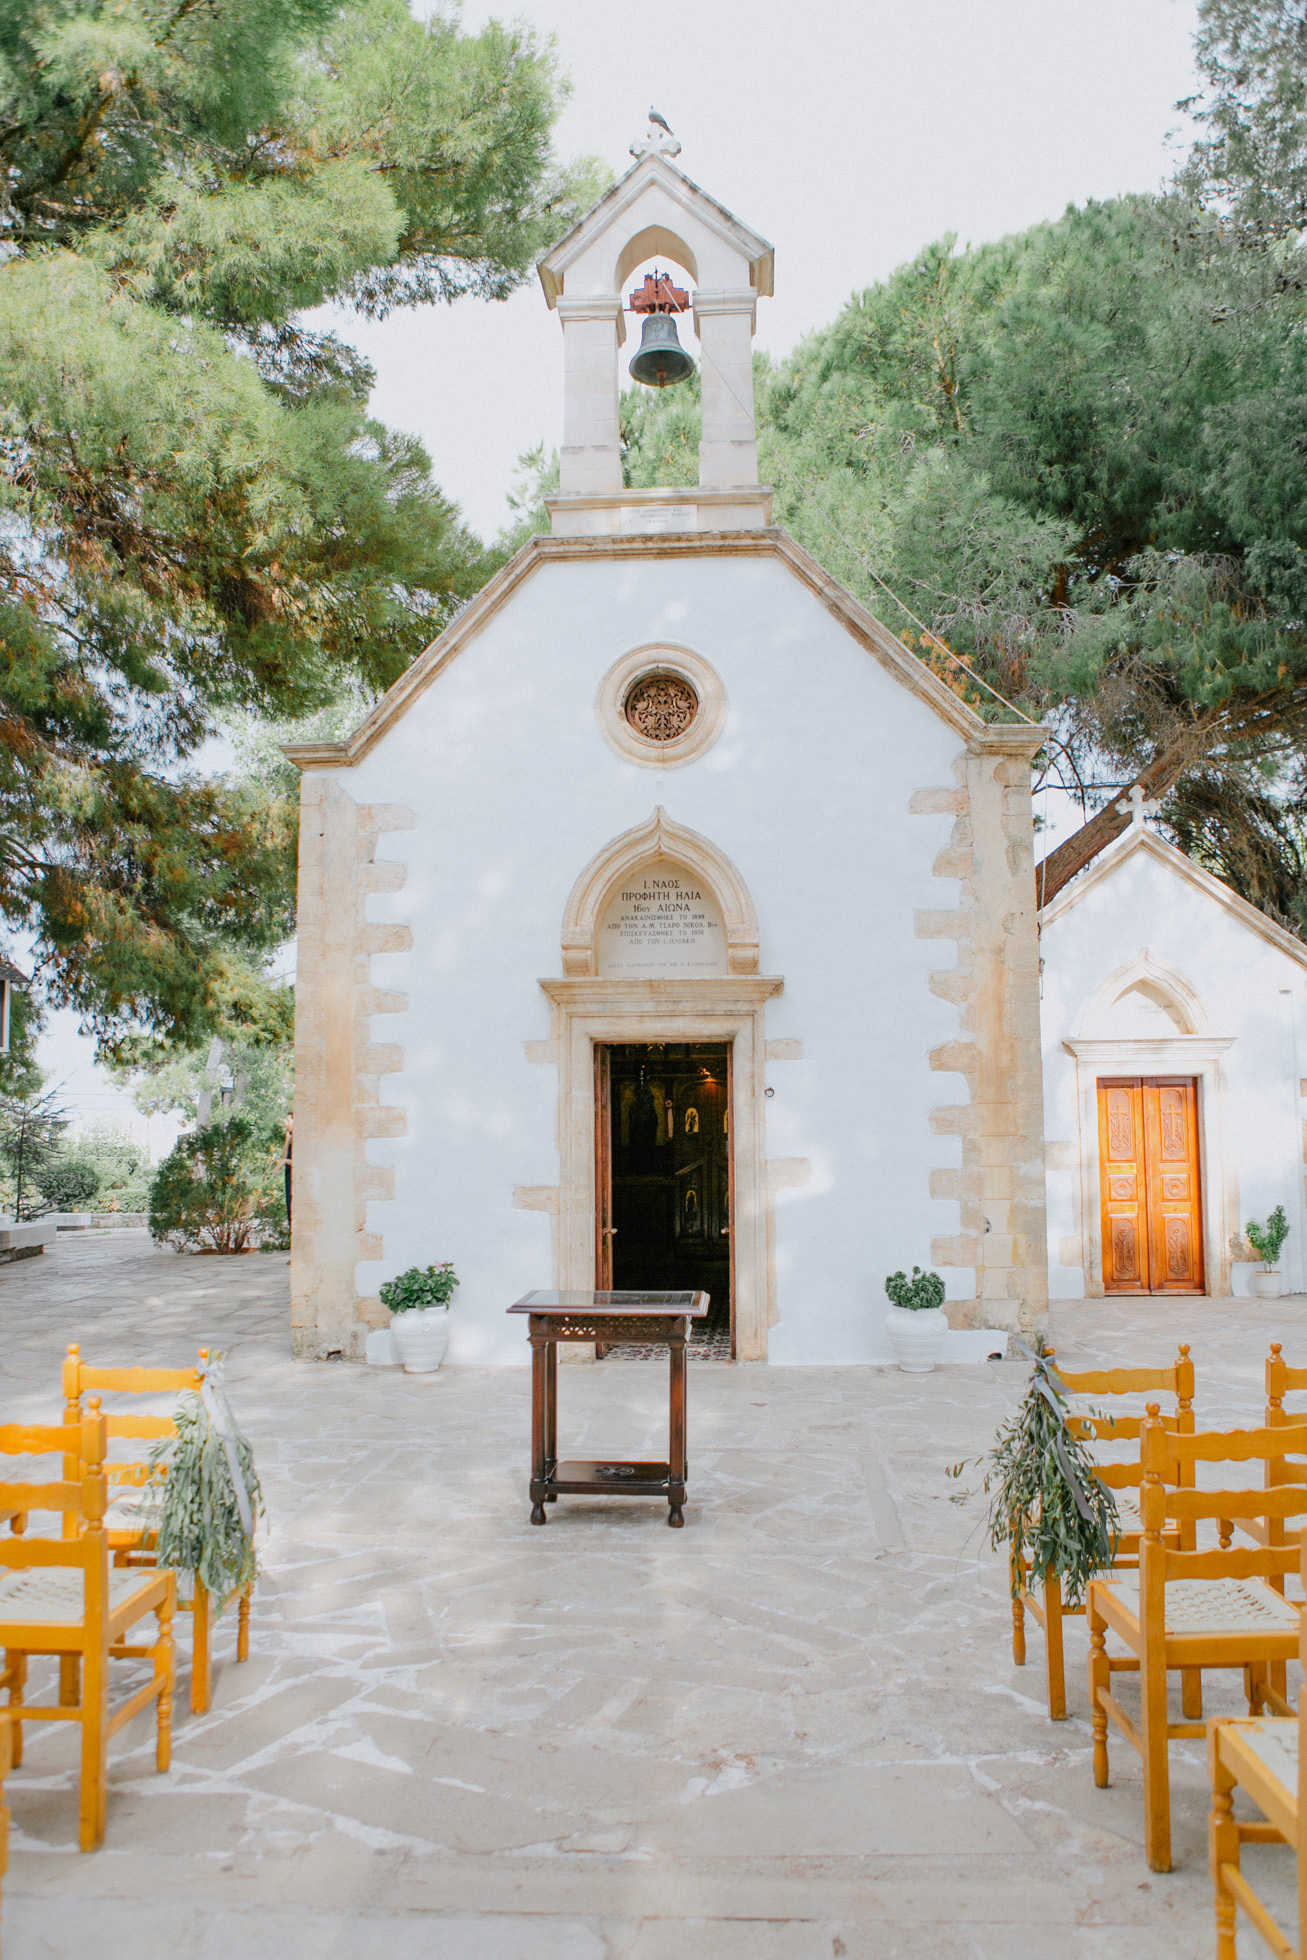 Greek orthodox ceremony set up at the church of Profitis Ilias, Chania, Crete.